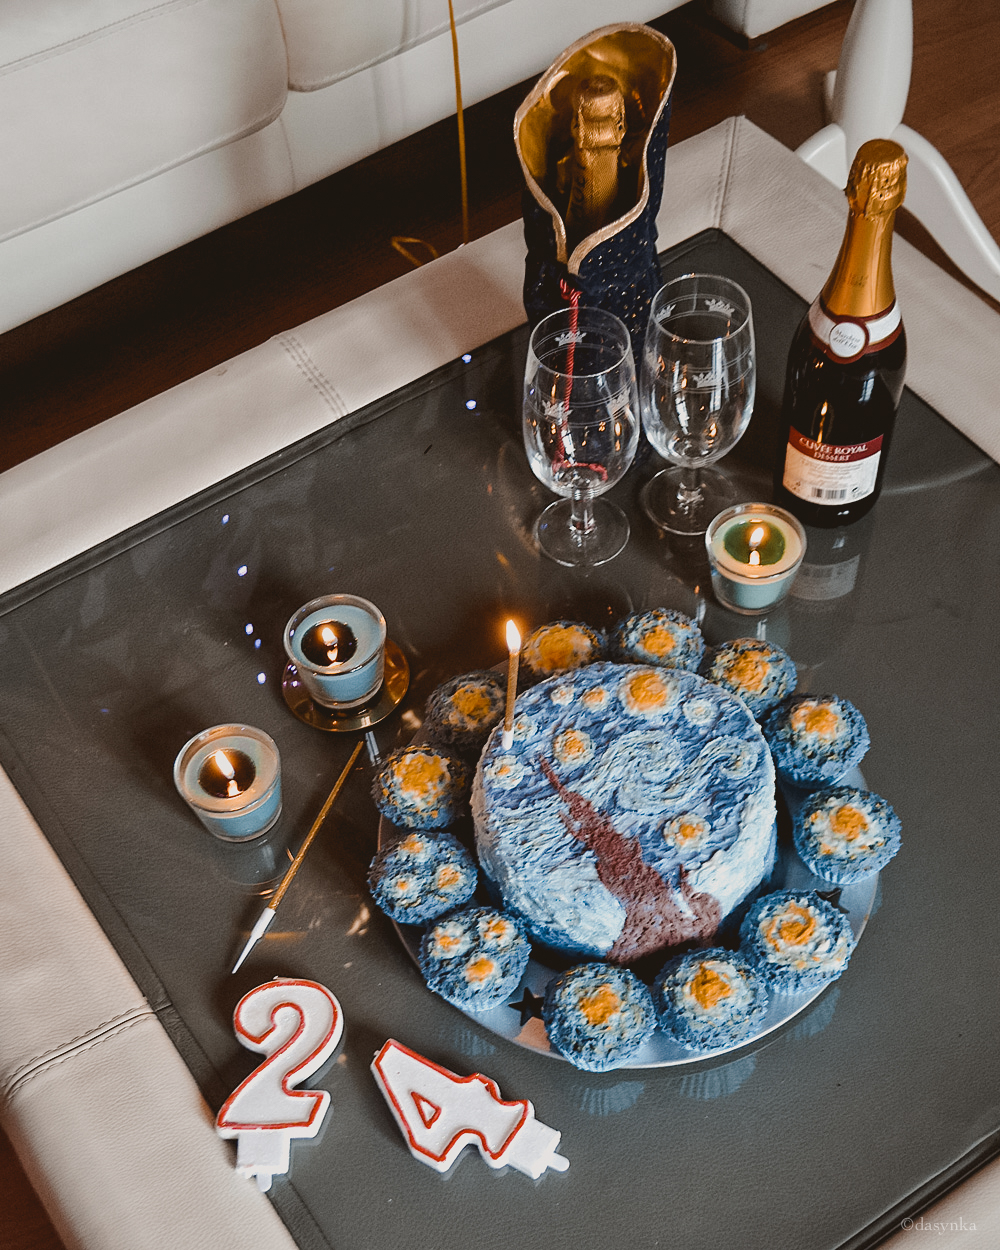 dasynka-fashion-blog-blogger-influencer-inspiration-women-ootd-inspo-outfit-shooting-model-globettrotter-travel-girl-lookbook-instagram-long-hair-street-style-casual-italy-lifestyle-birthday-bday-cake-van-gogh-painting-design-paint-starry-night-ballons-luxury-gift-surprise